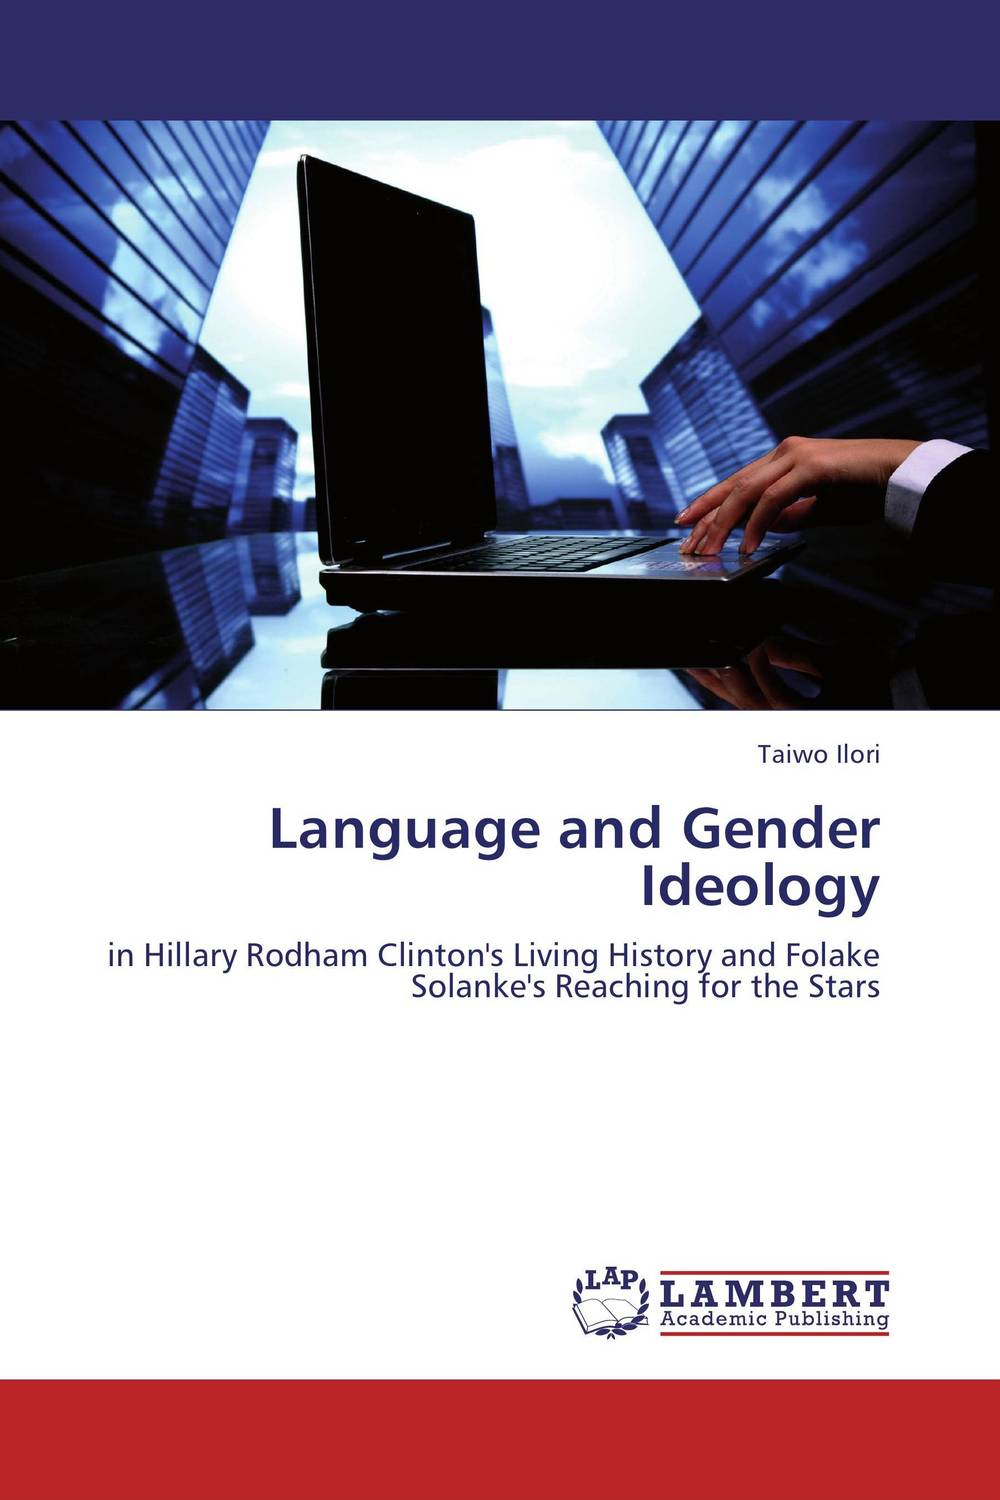 Language and Gender Ideology communities of discourse – ideology